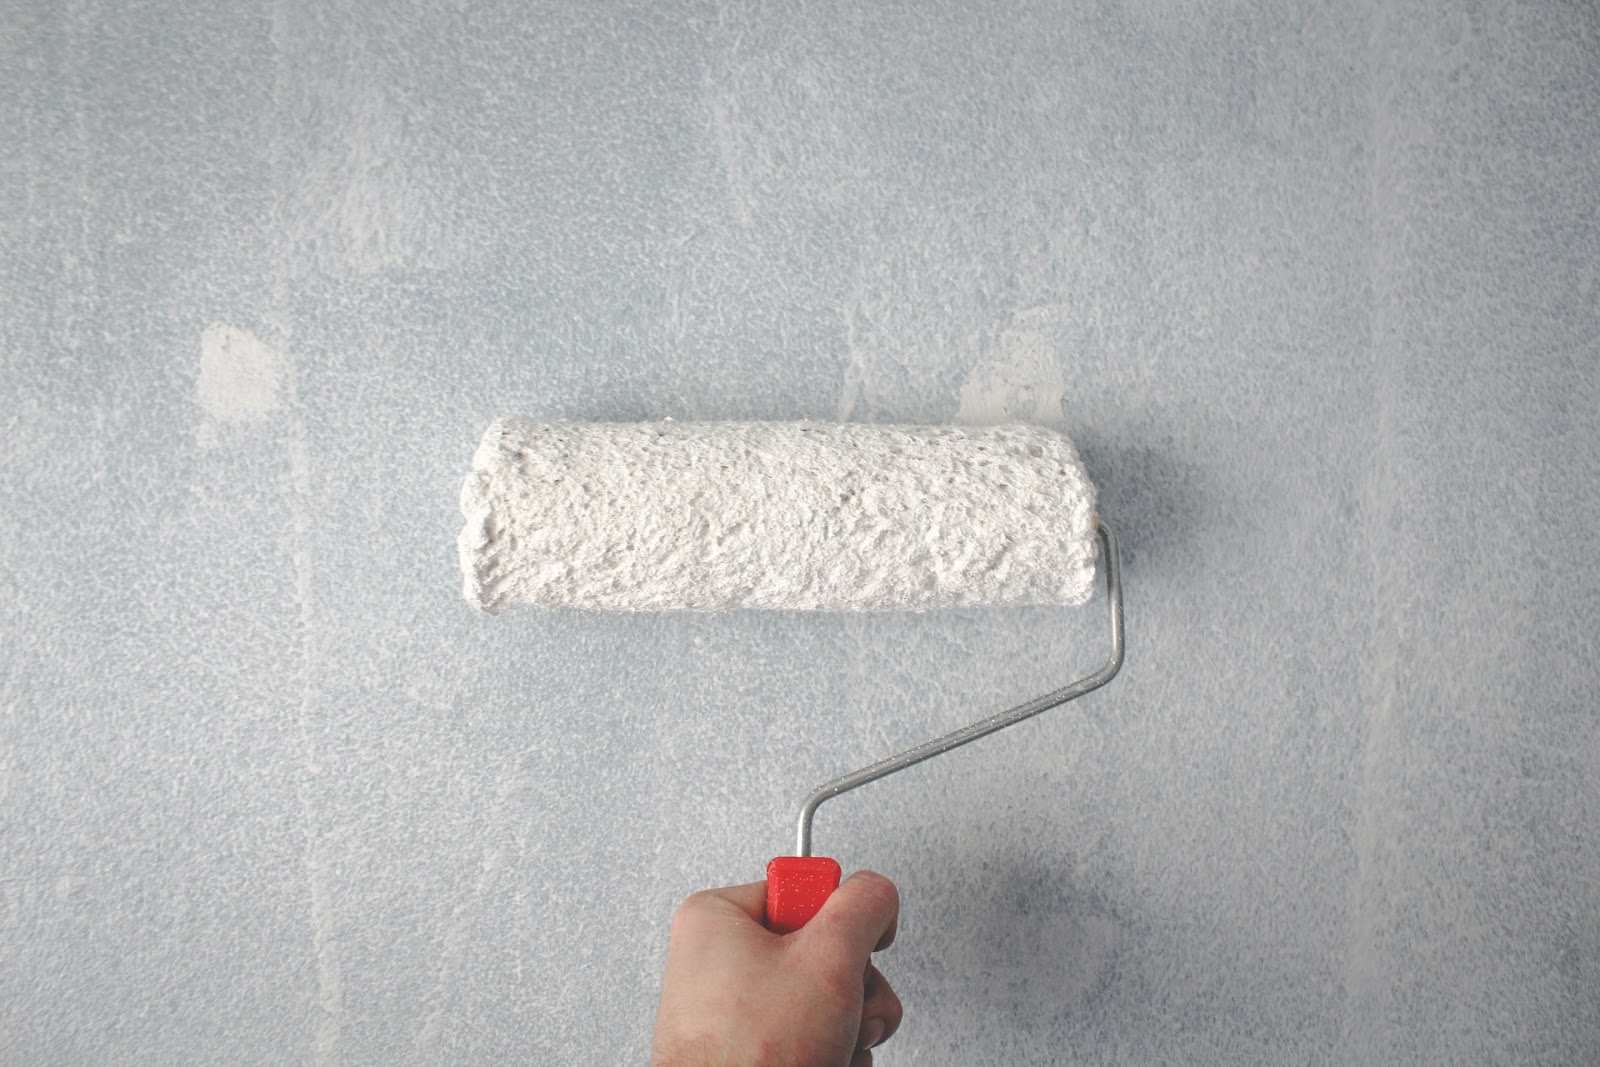 Paint roller painting white paint on to a wall.